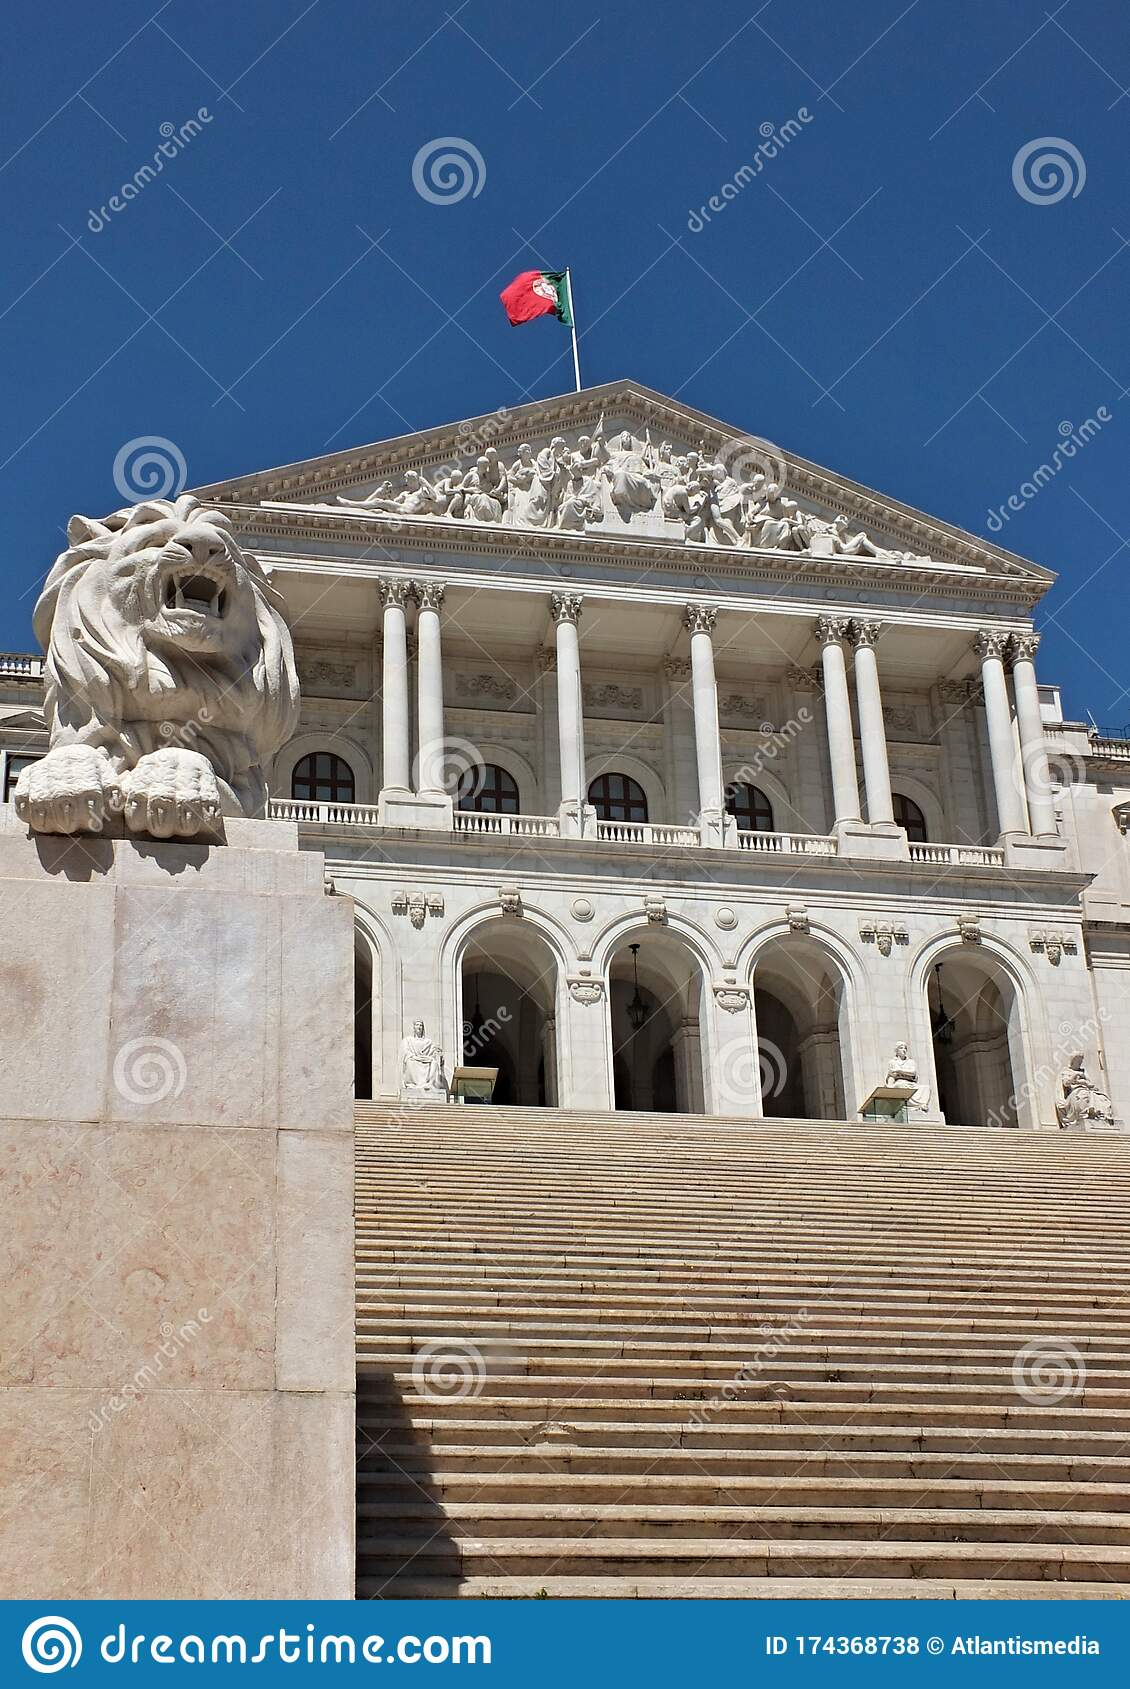 Historical Facade Of The Portugal Government In Lisbon Portugal Stock Photo Image Of Building Front 174368738